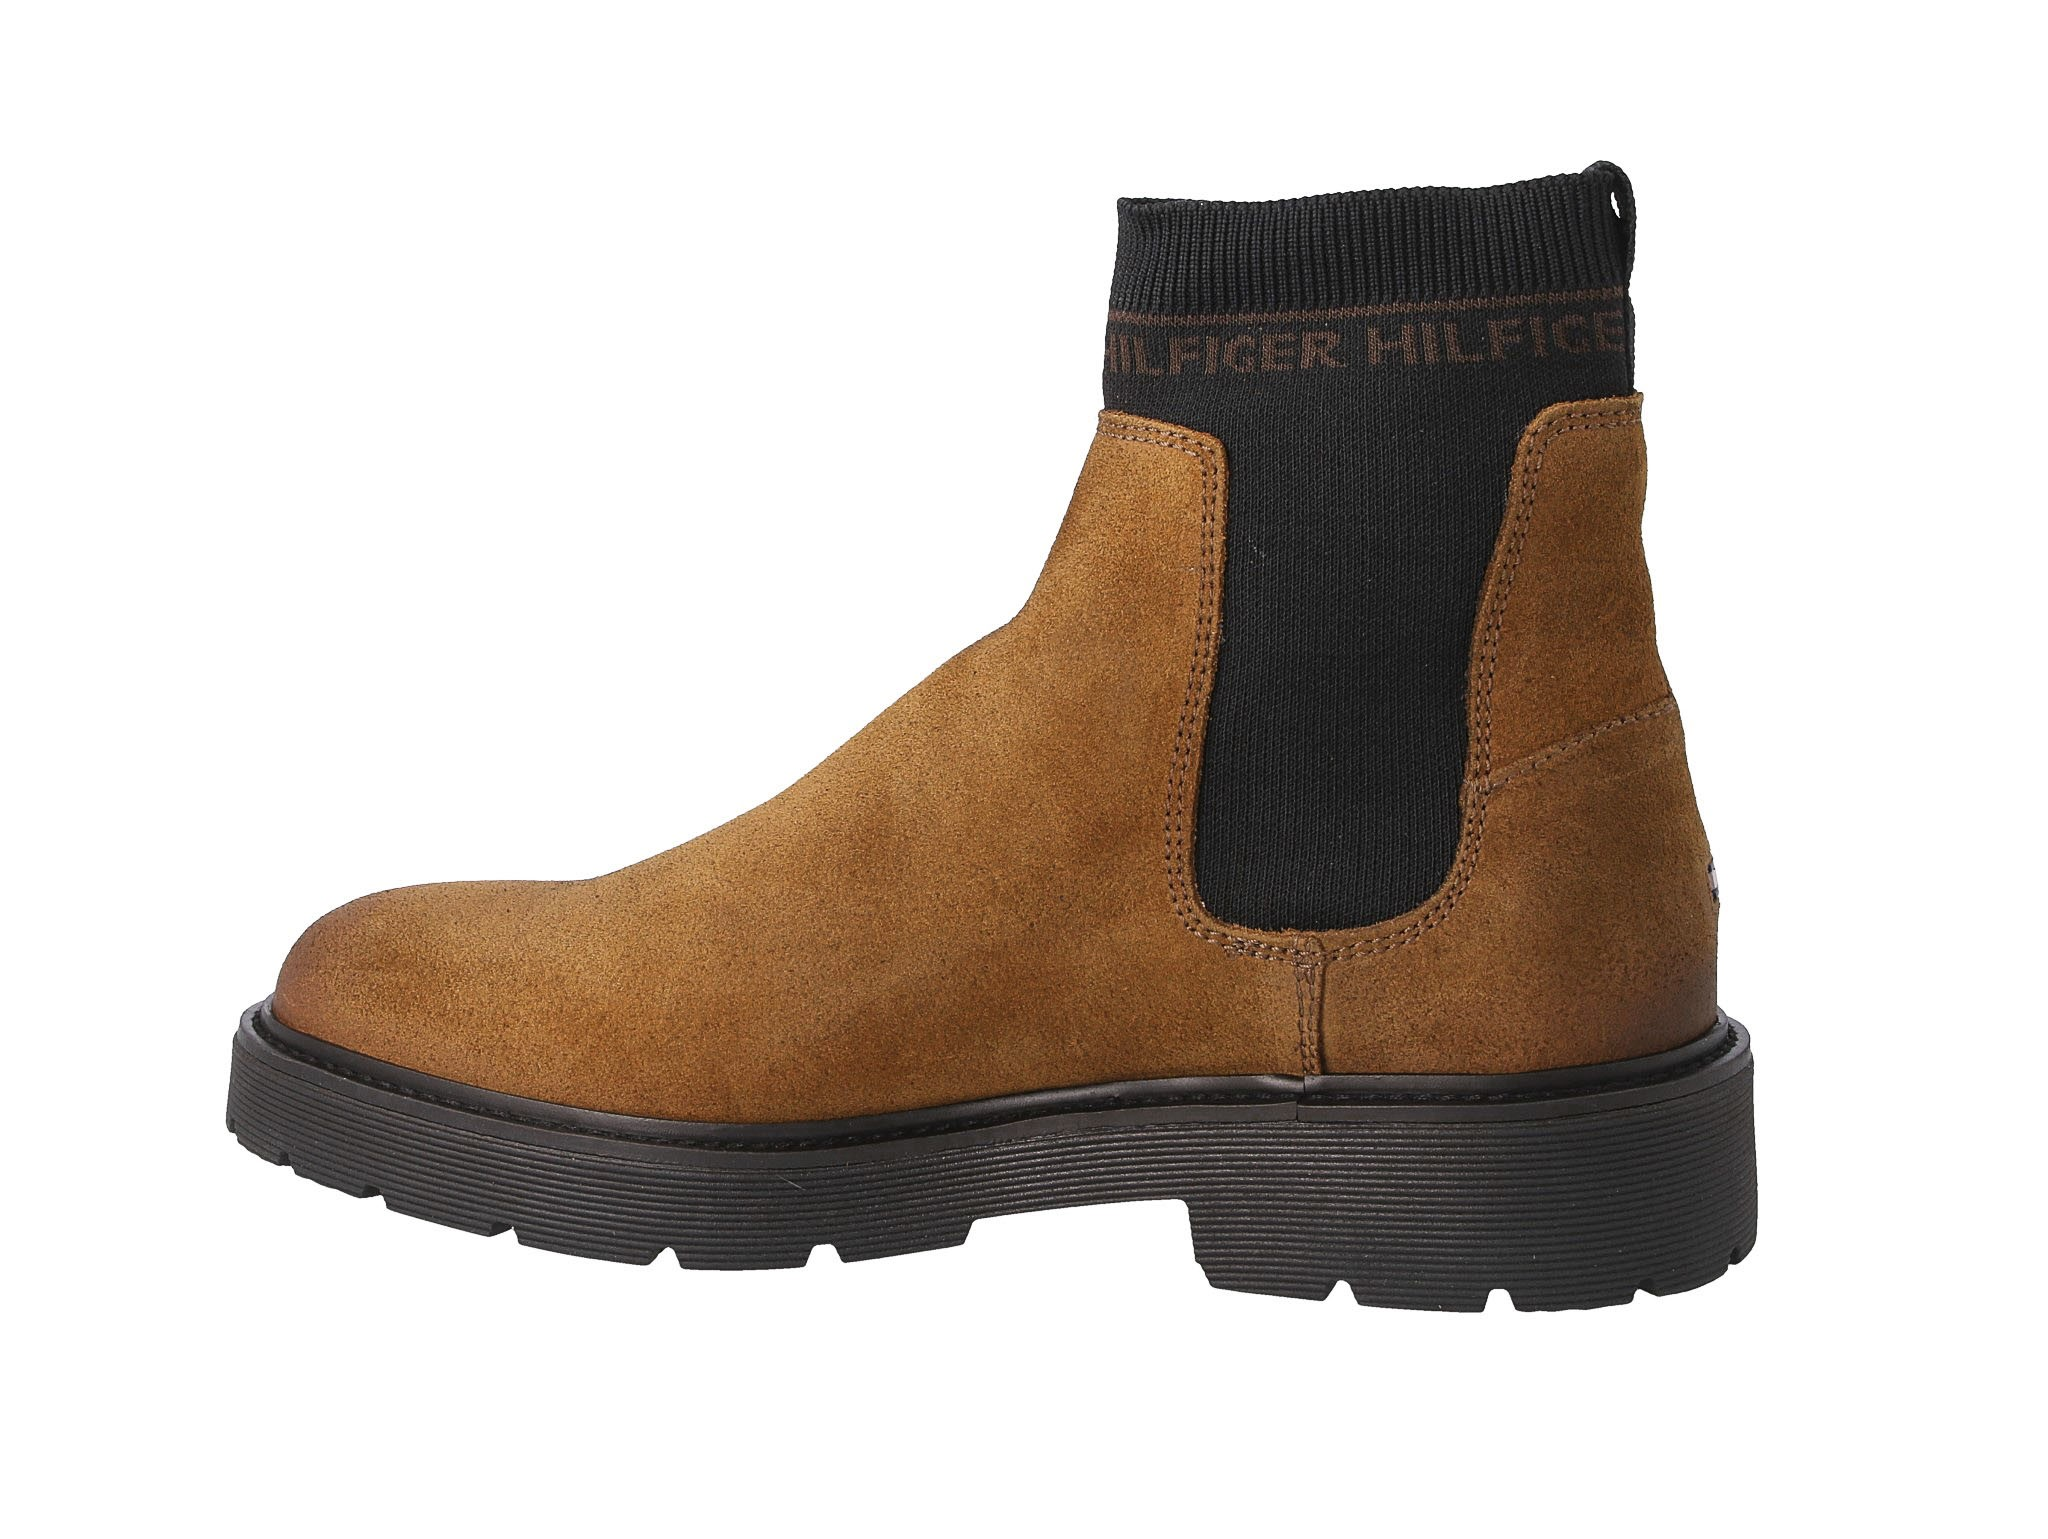 Sztyblety TOMMY HILFIGER - Suede Cleated Chelsea Boot FM0FM02532 Winter Cognac GVI